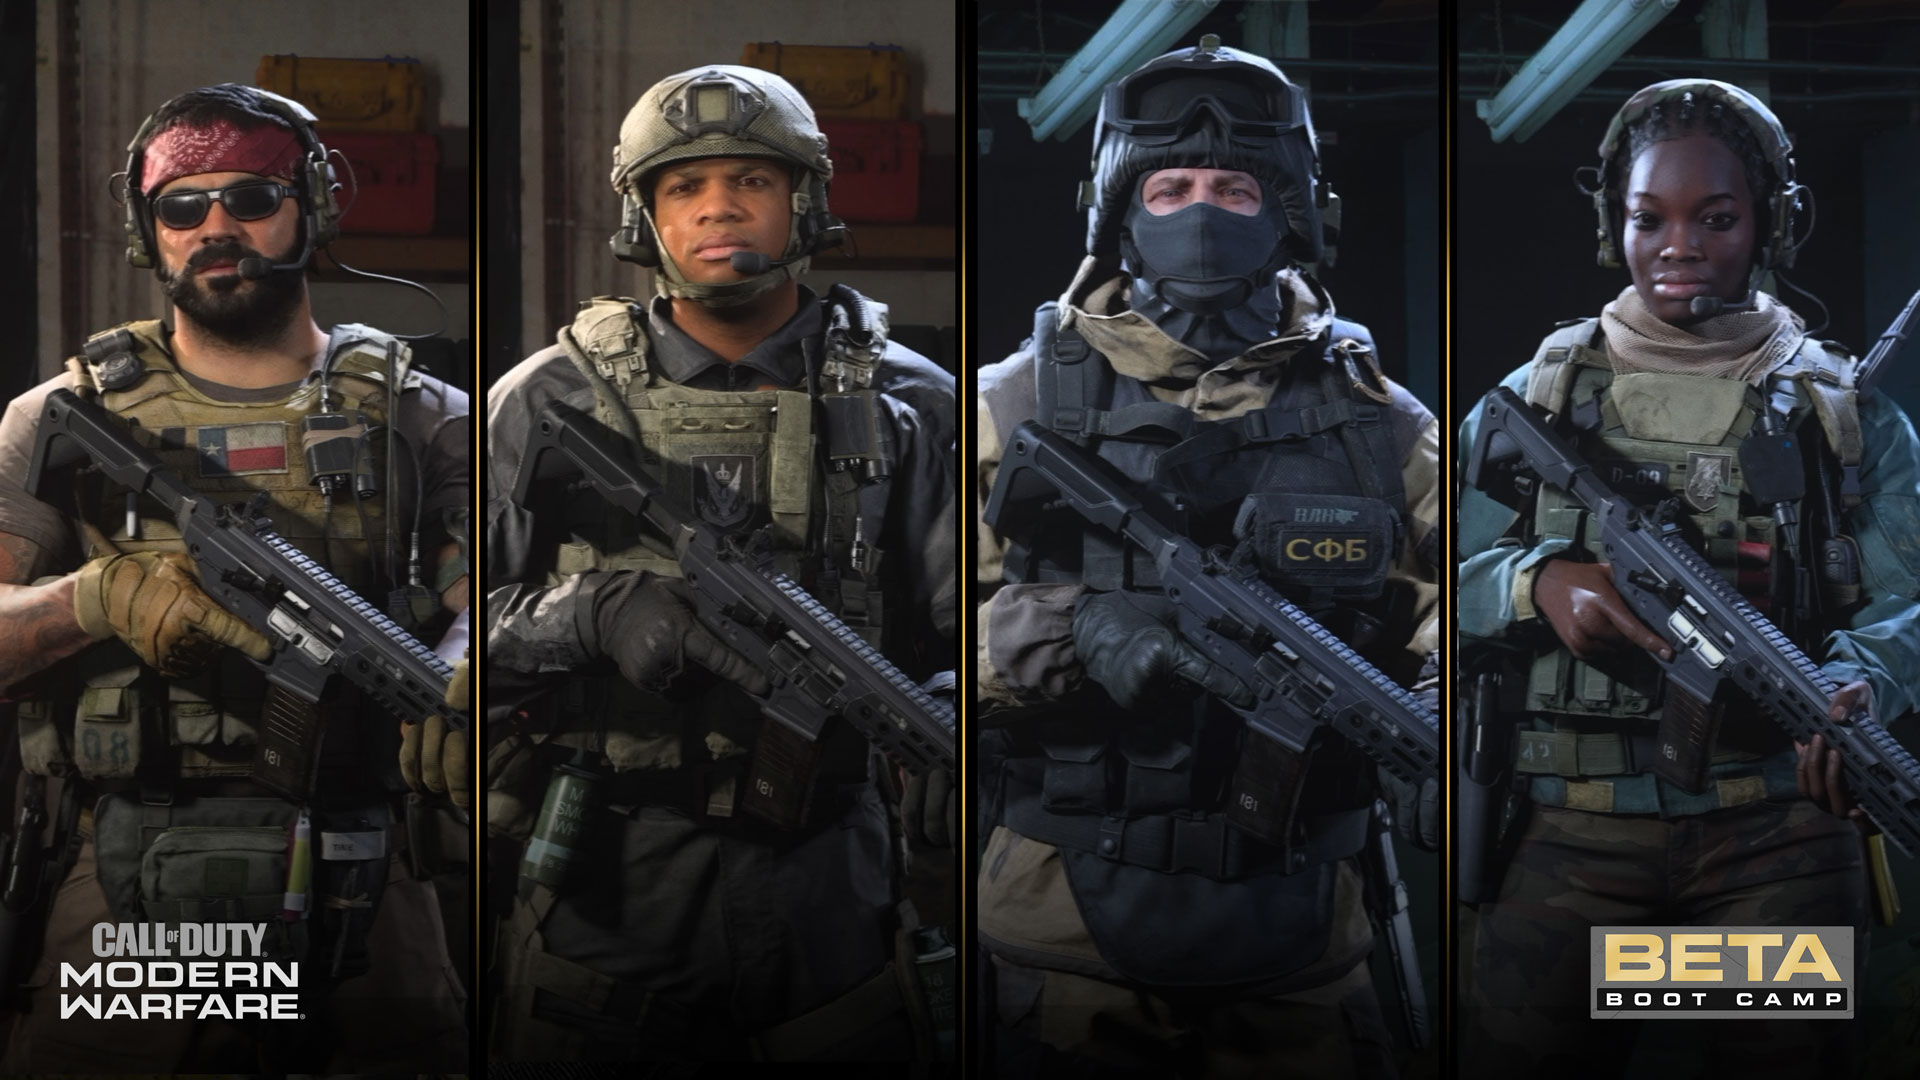 call of duty modern warfare characters